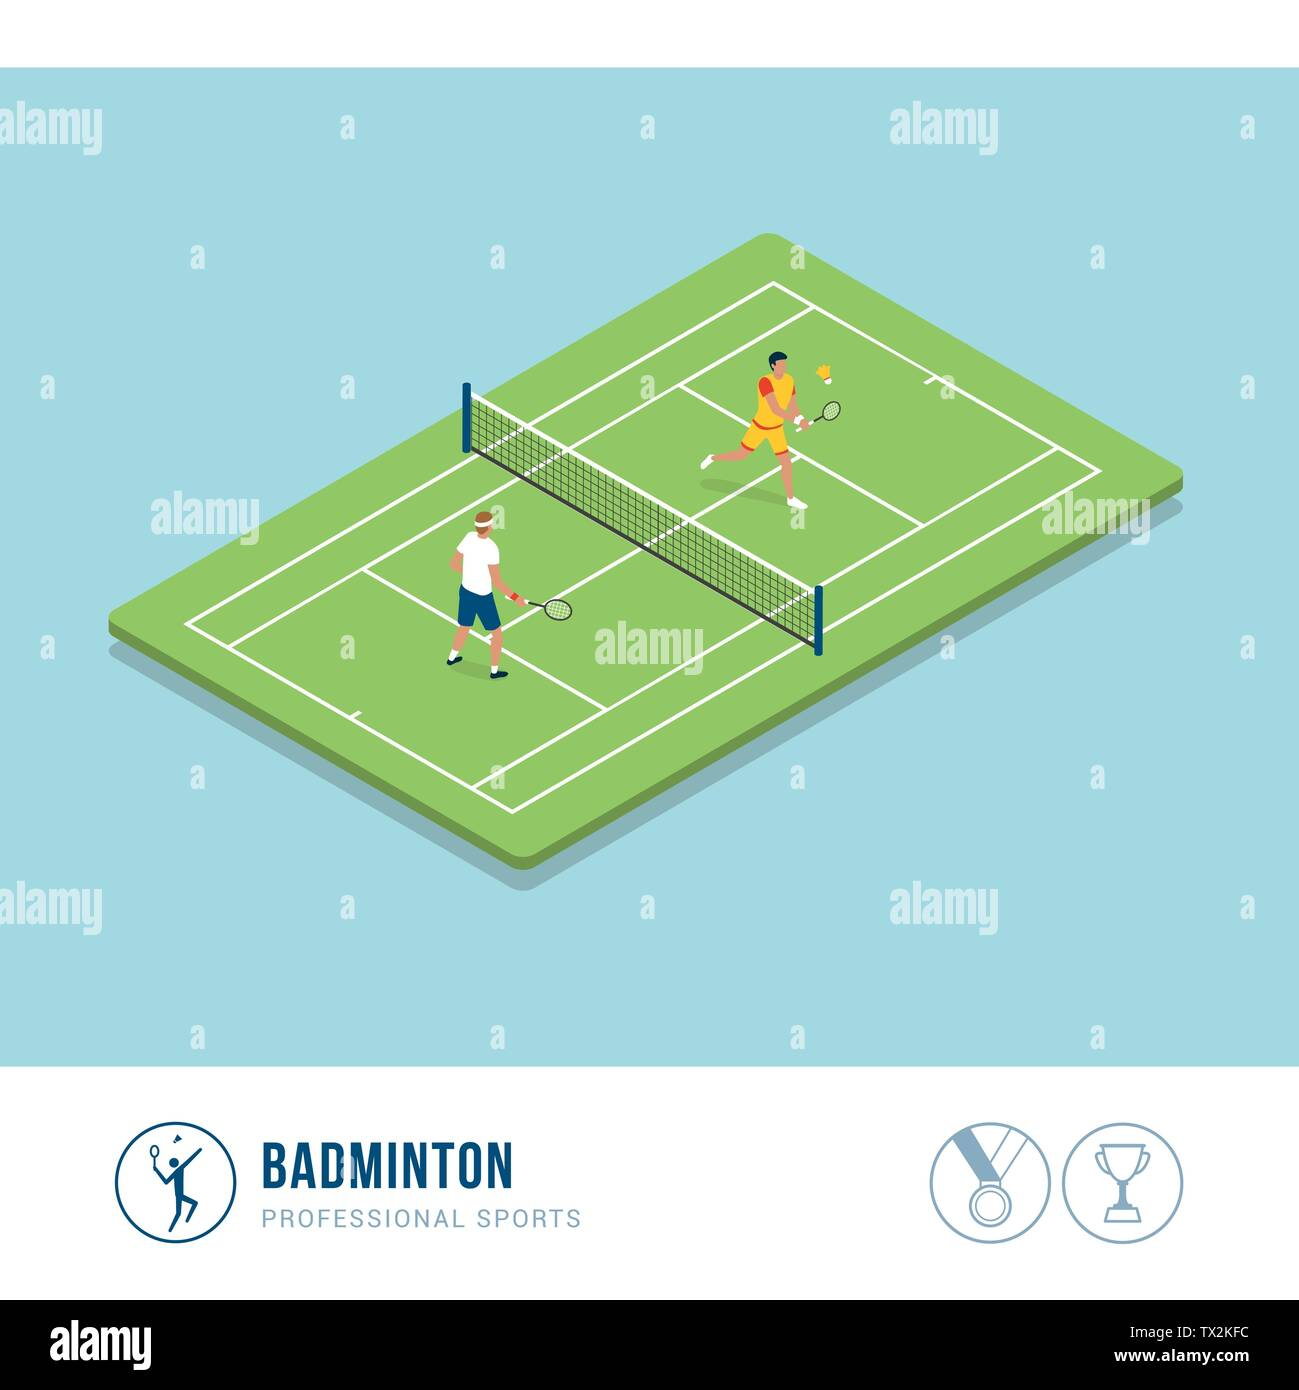 Professional sports competition: badminton, two players hitting the shuttlecock with their racquets - Stock Vector